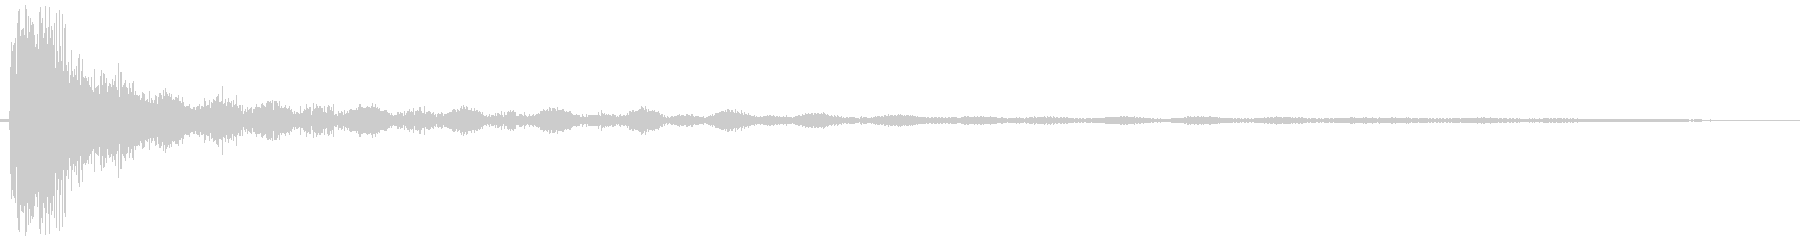 Guyoan (widely resonately low impact sound)'s unreproduced waveform